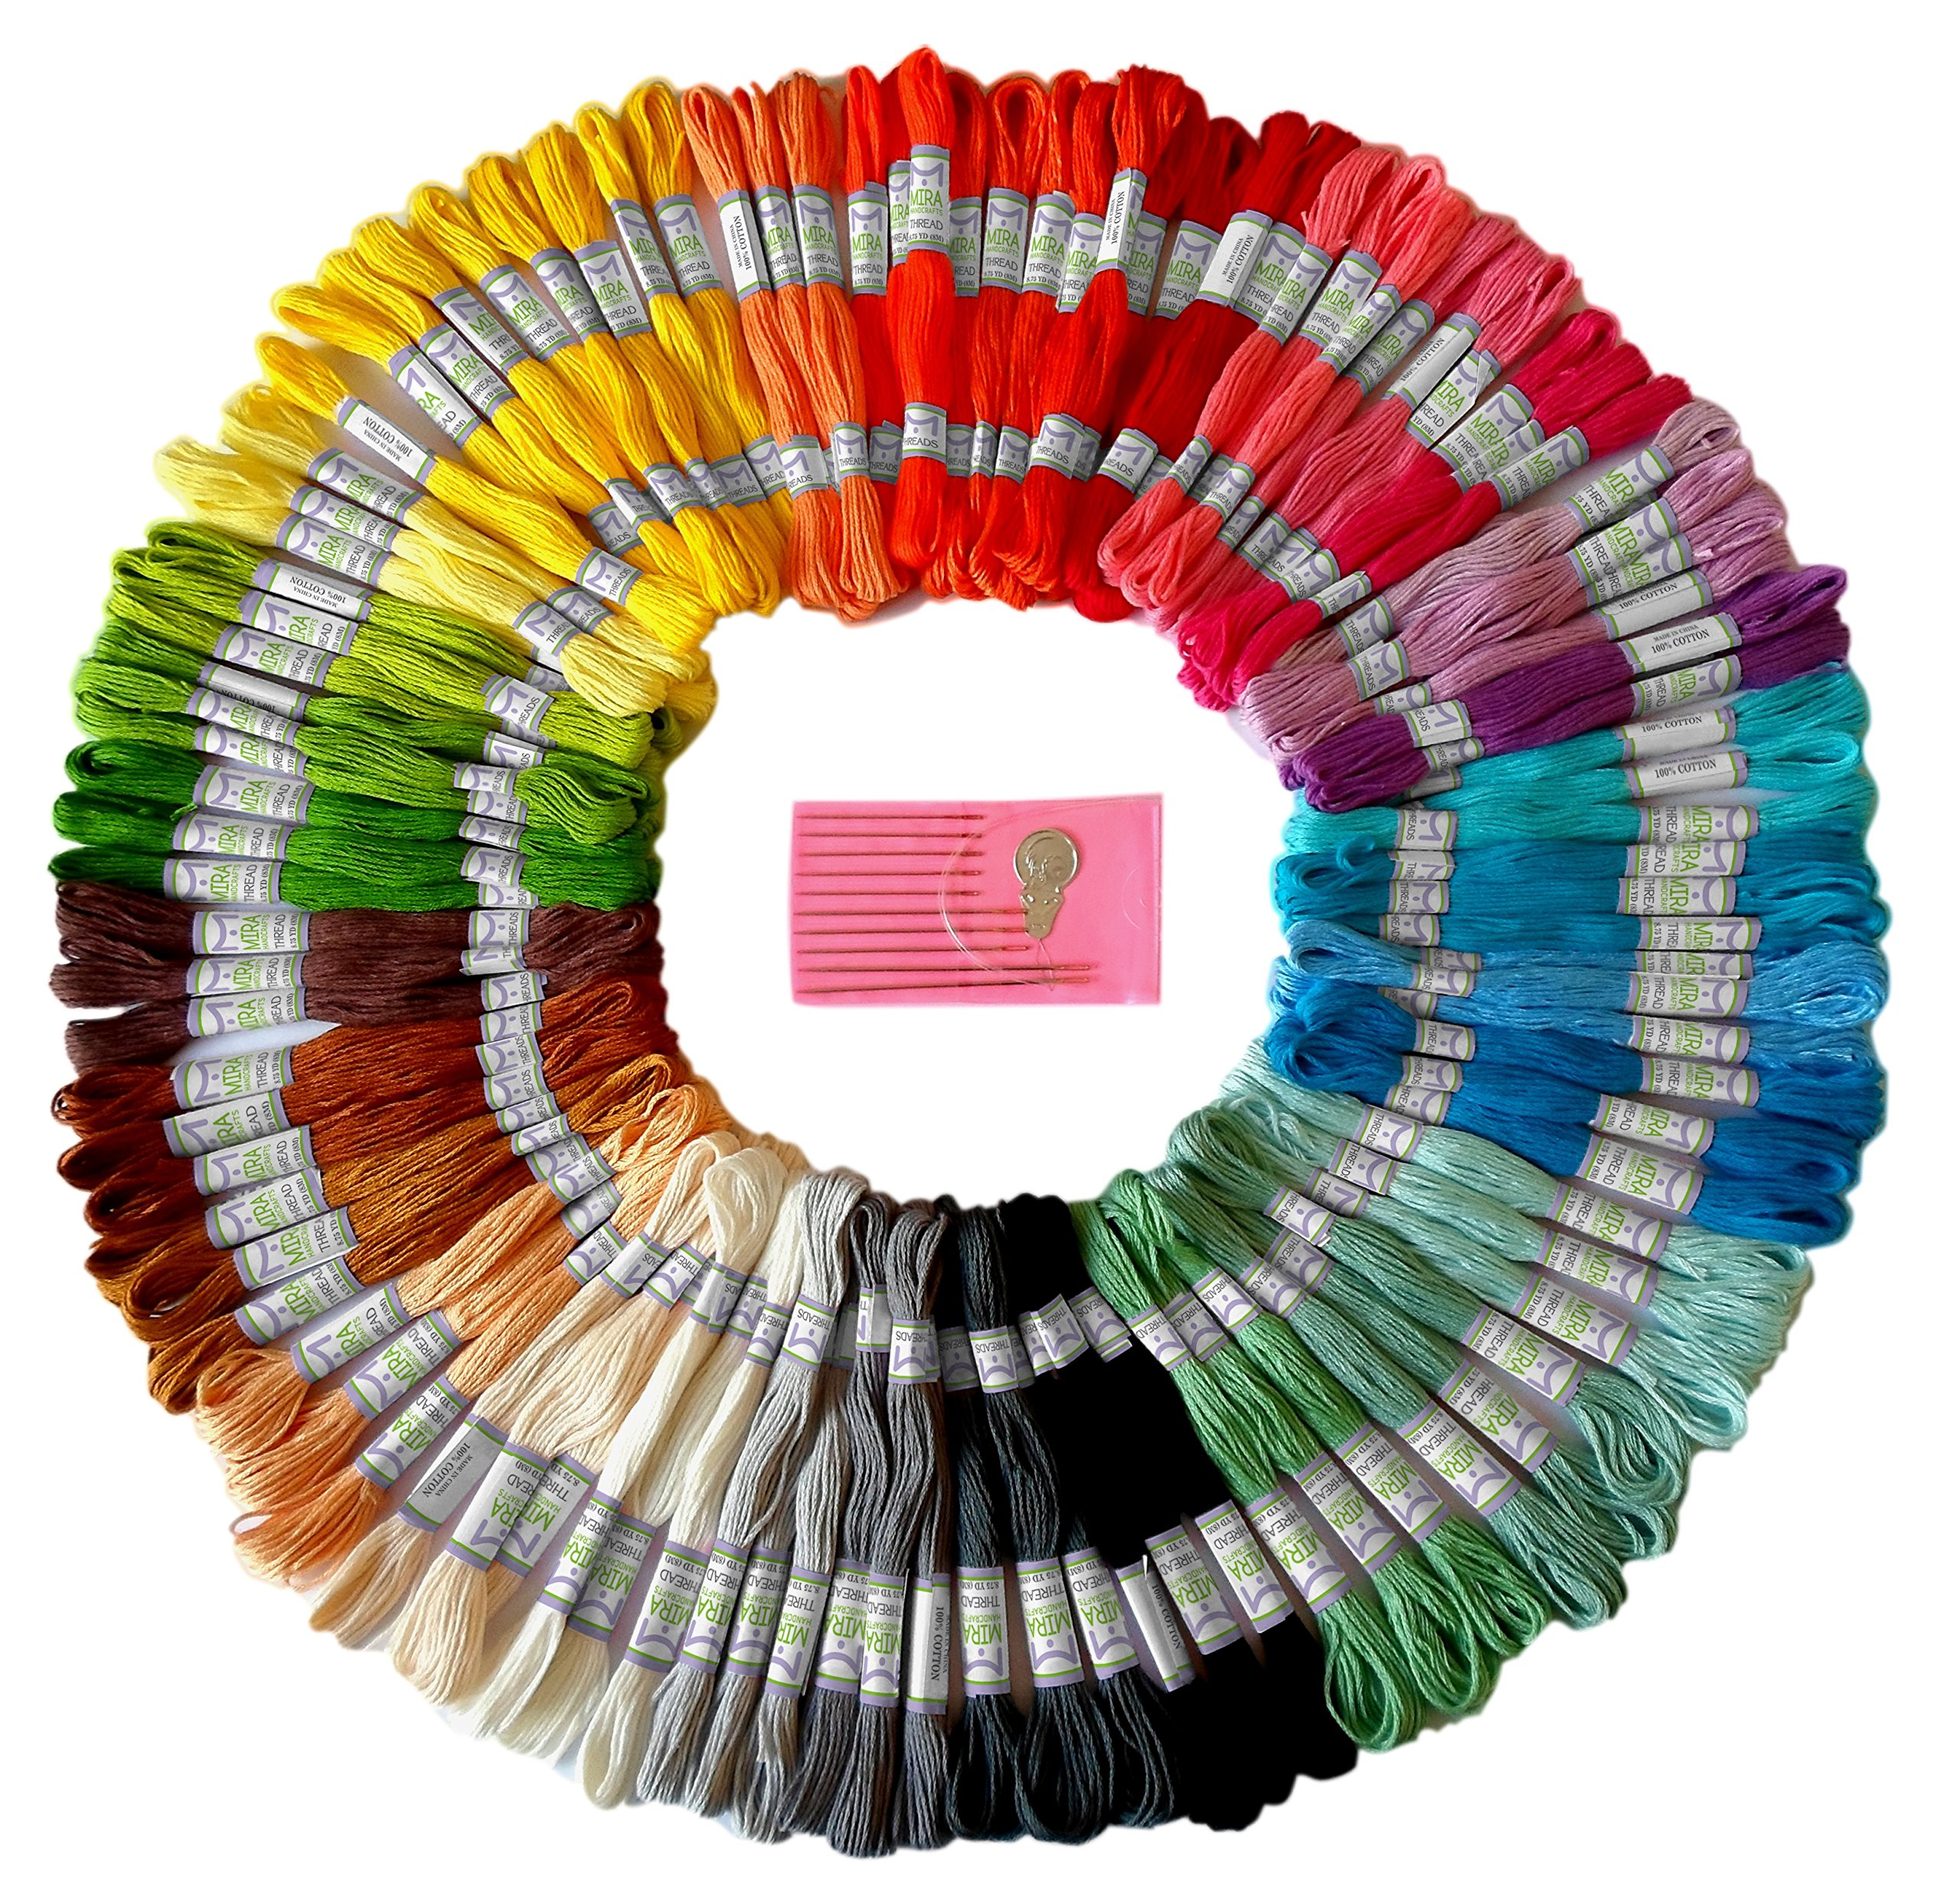 """Wrap and Store Floss Darice White Pla Plastic Bobbins 1-1//2/"""" Long 50 Pieces Needlepoint and Craft Perforated to Hold Thread in Place Keep Organized and Untangled"""